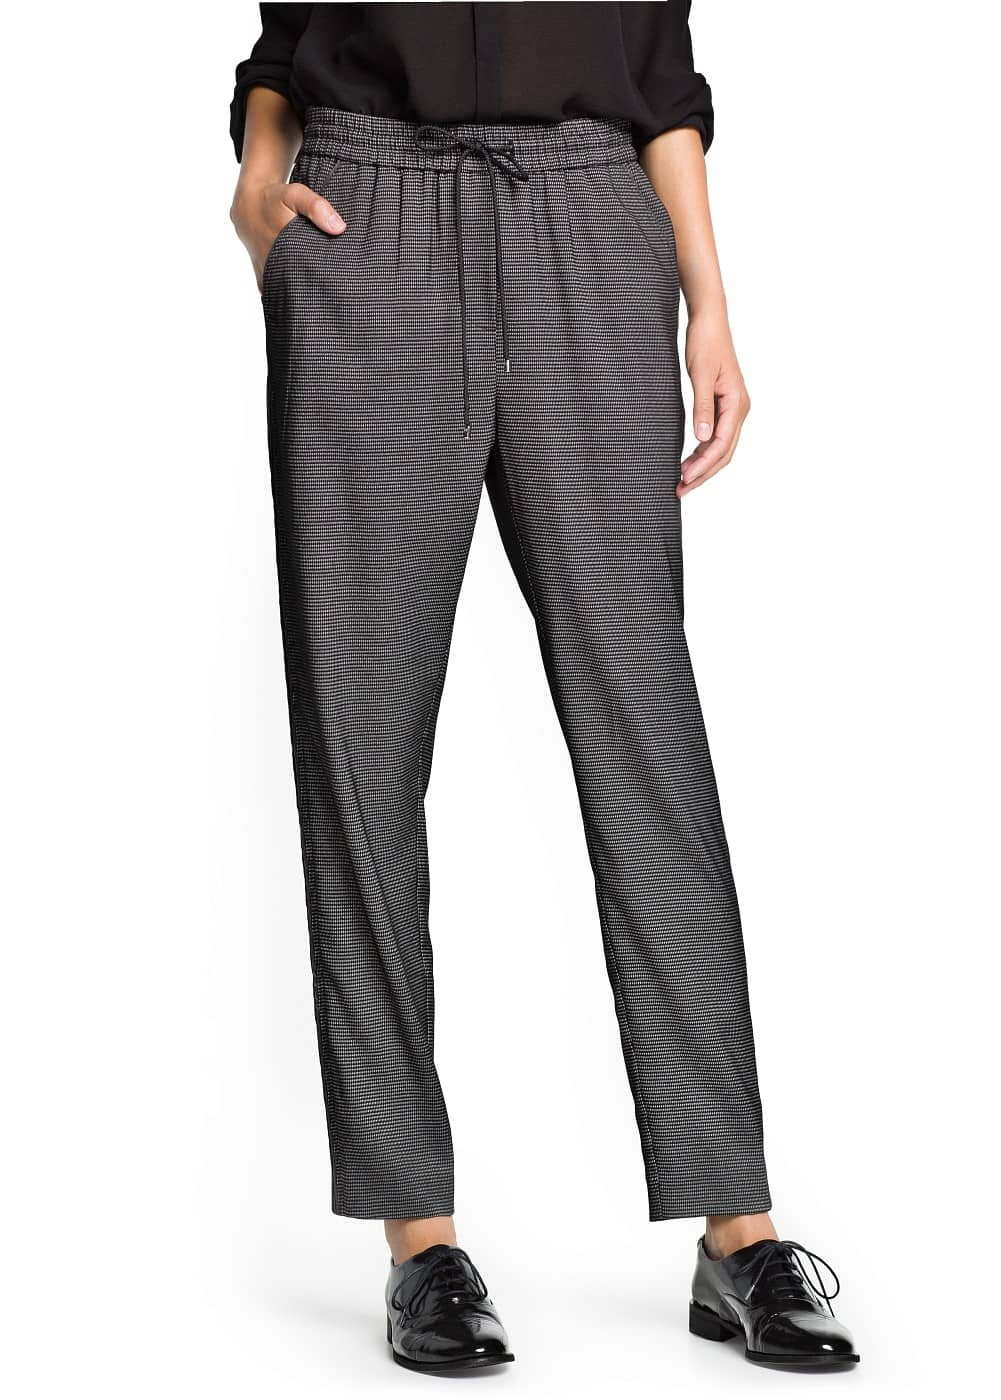 Jacquard baggy trousers